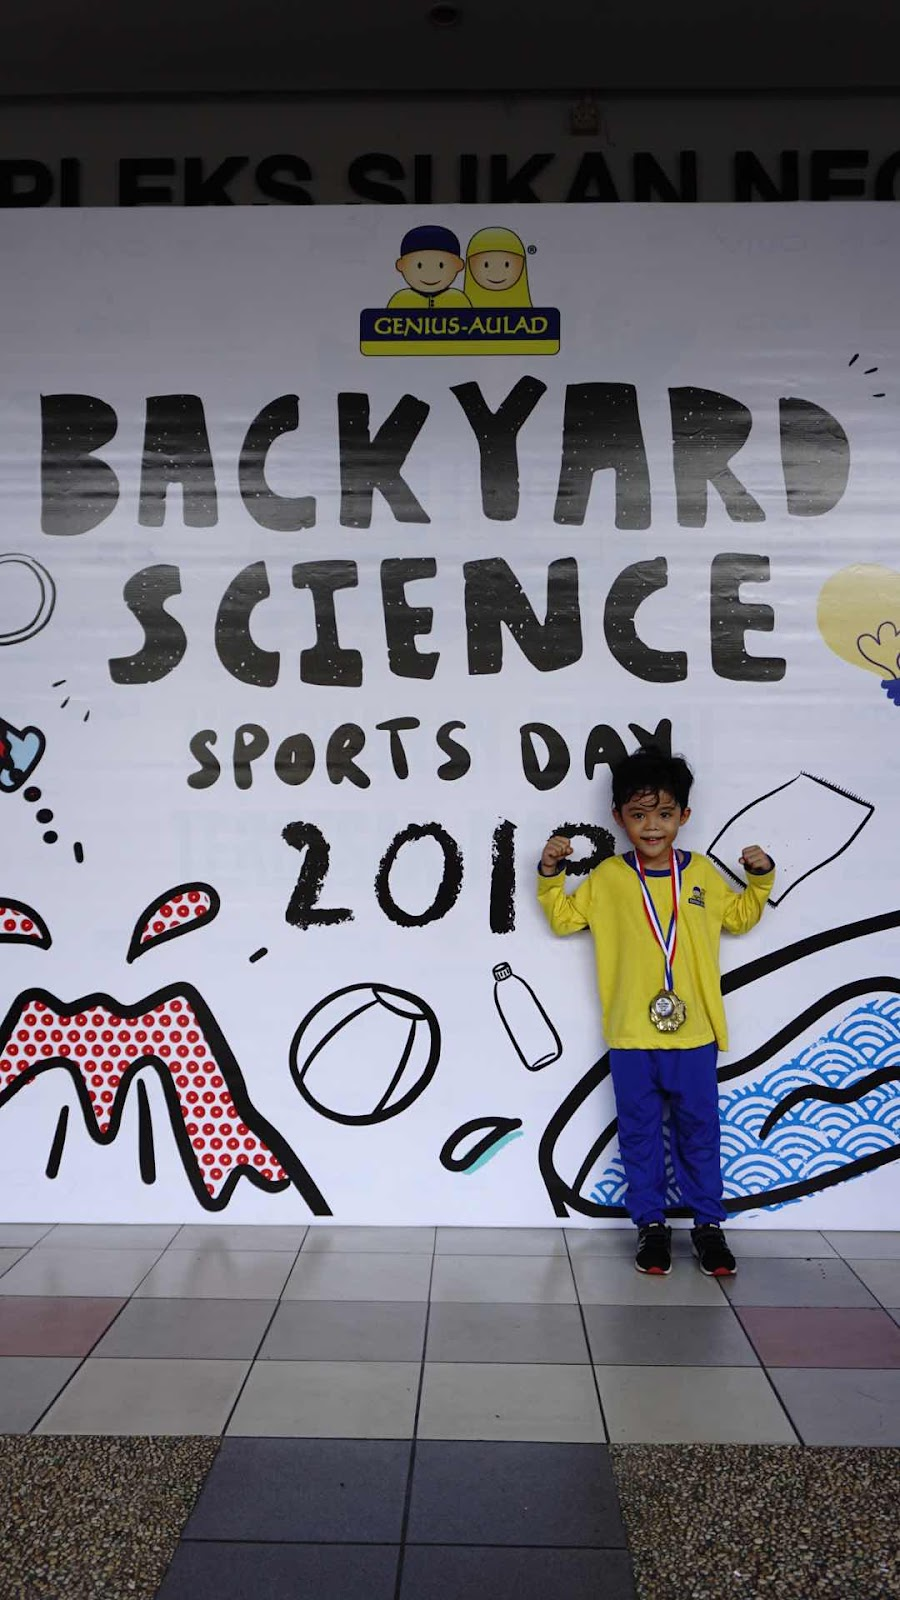 BackYard Science 2019 Sportday Genius Aulad Saujana Utama